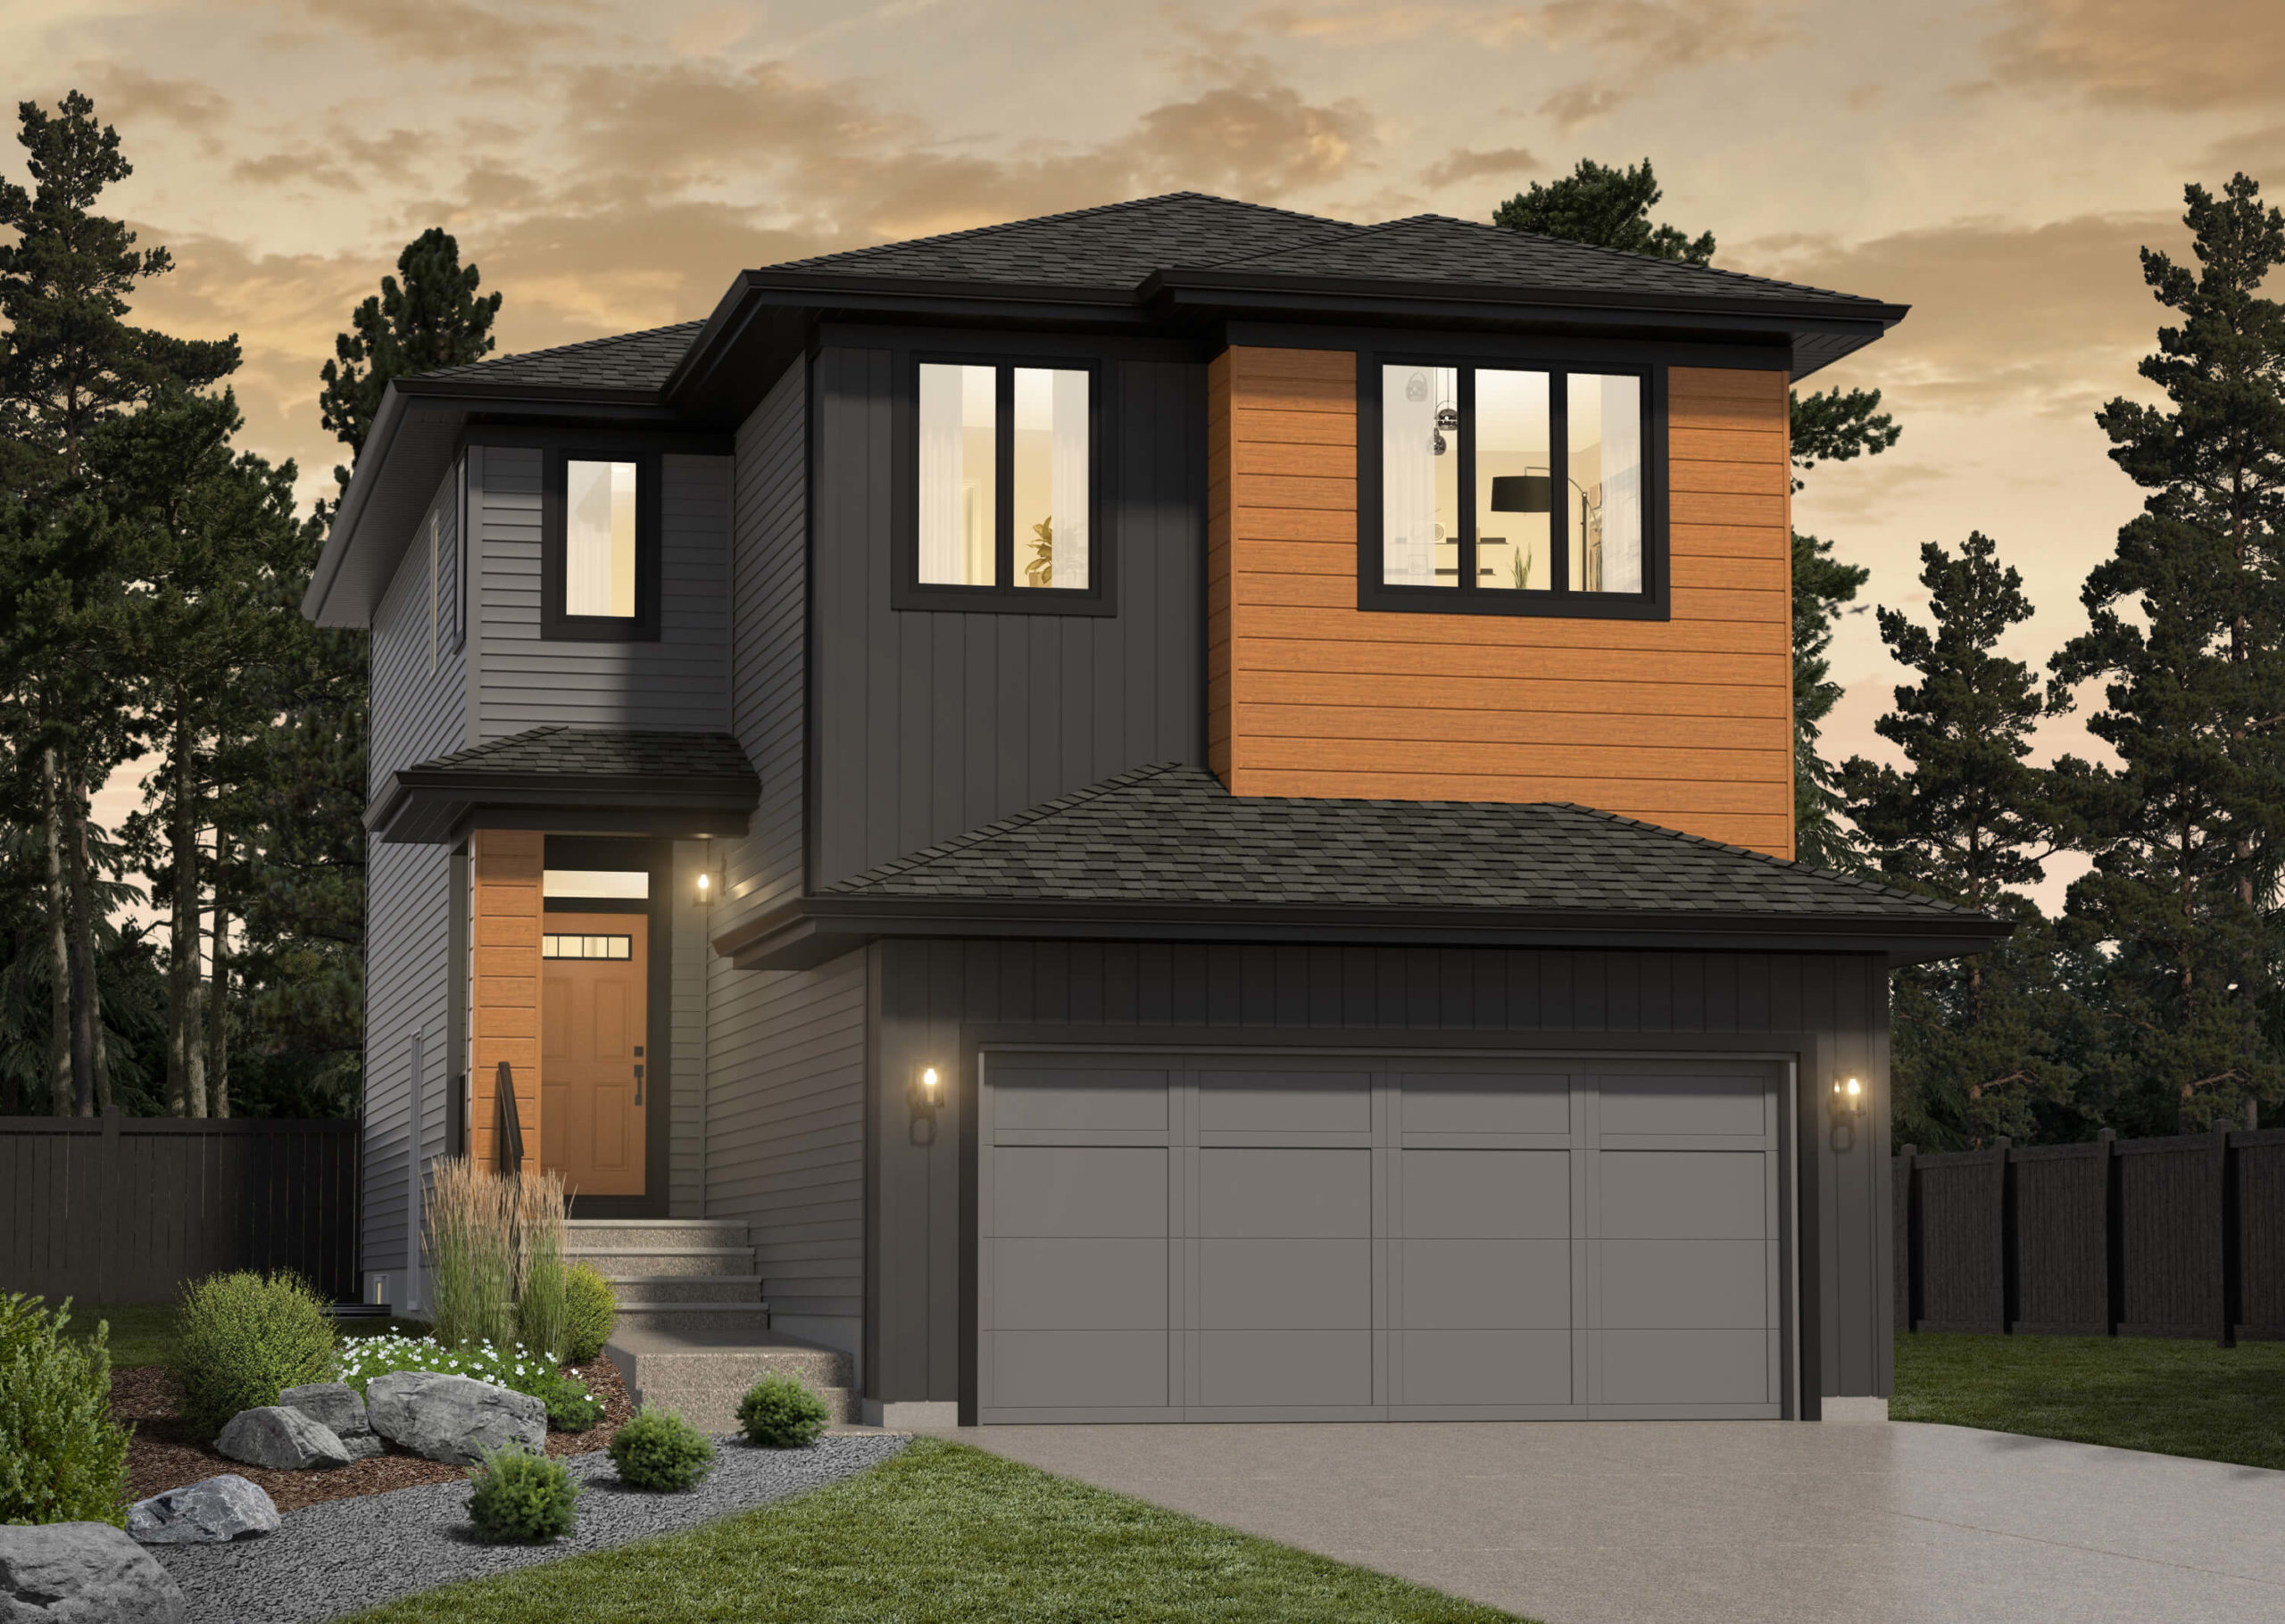 Rendering of the Webster II showhome located in Spruce Grove in the Community of Tonewood